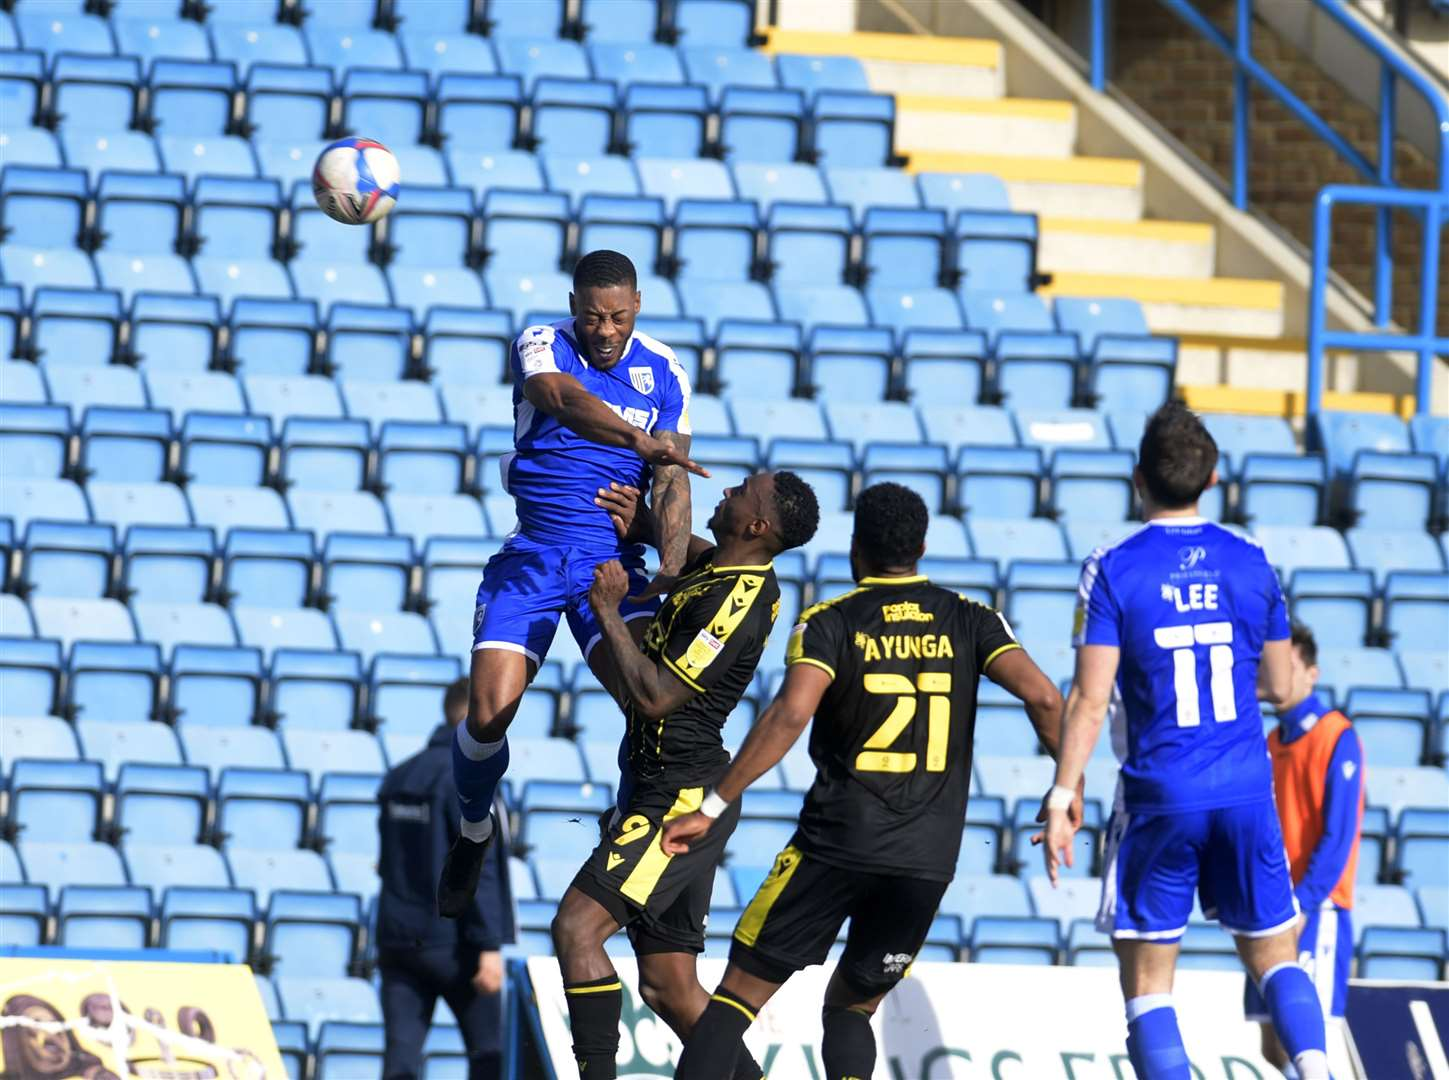 Gillingham defender Ryan Jackson wins the ball in the air Picture: Barry Goodwin